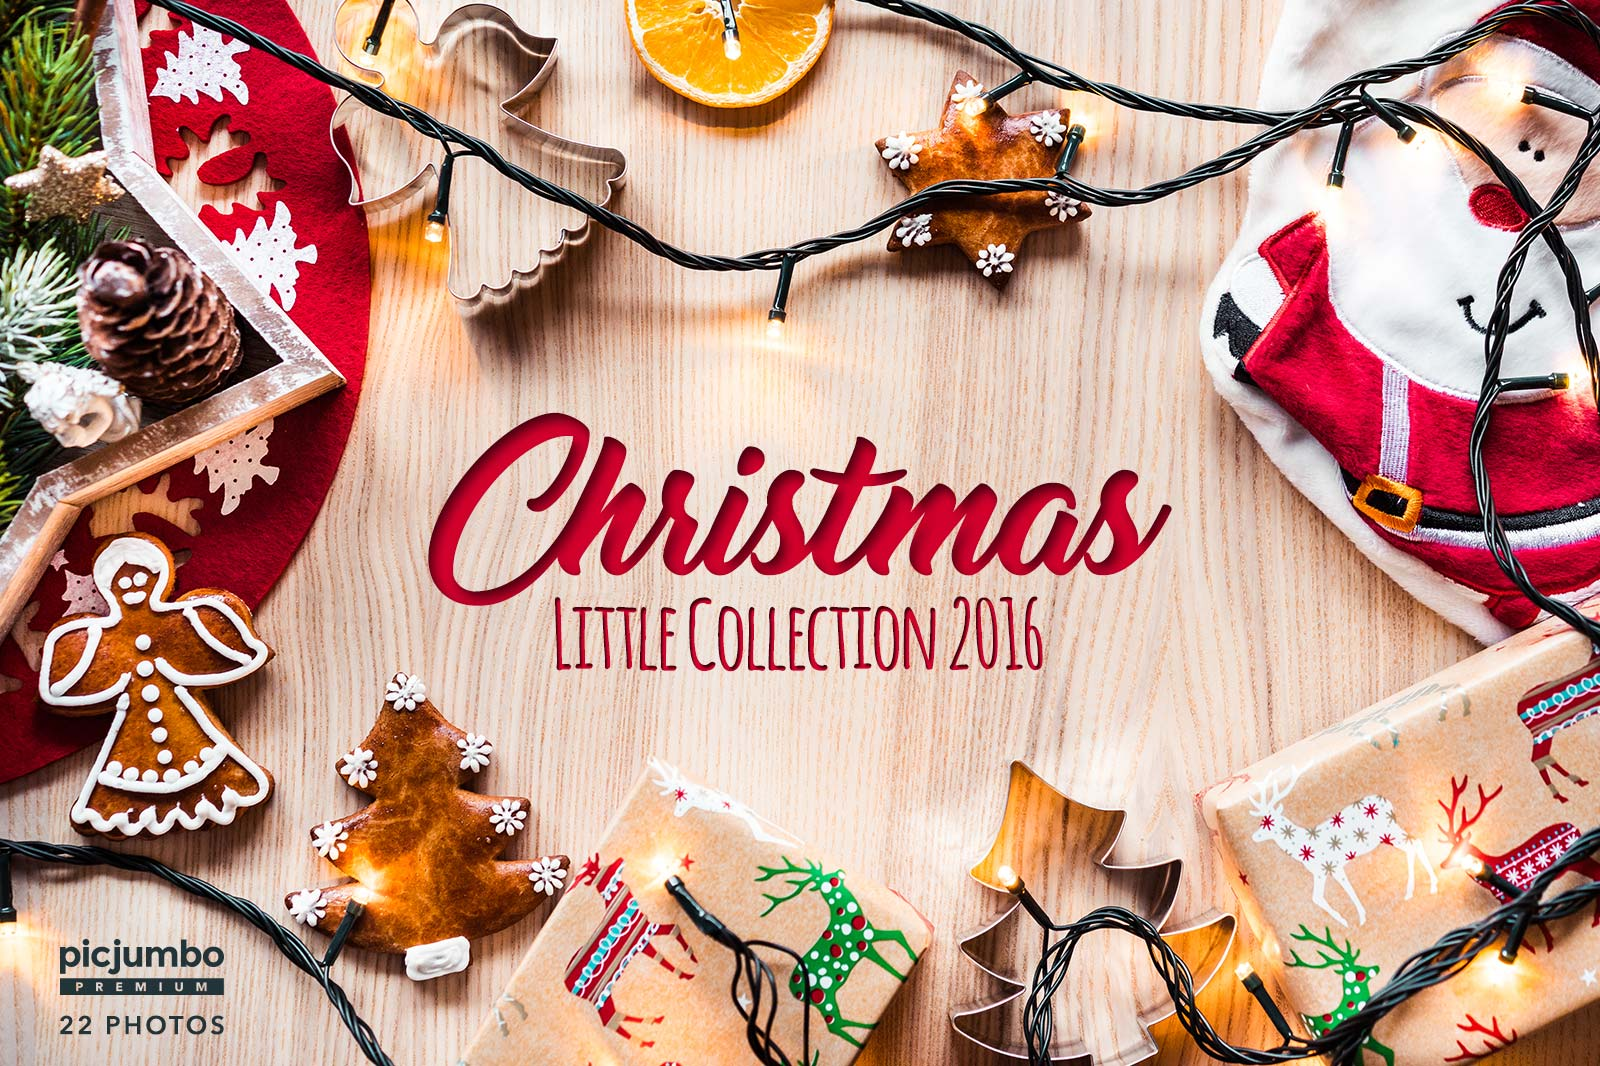 Christmas Little Collection 2016